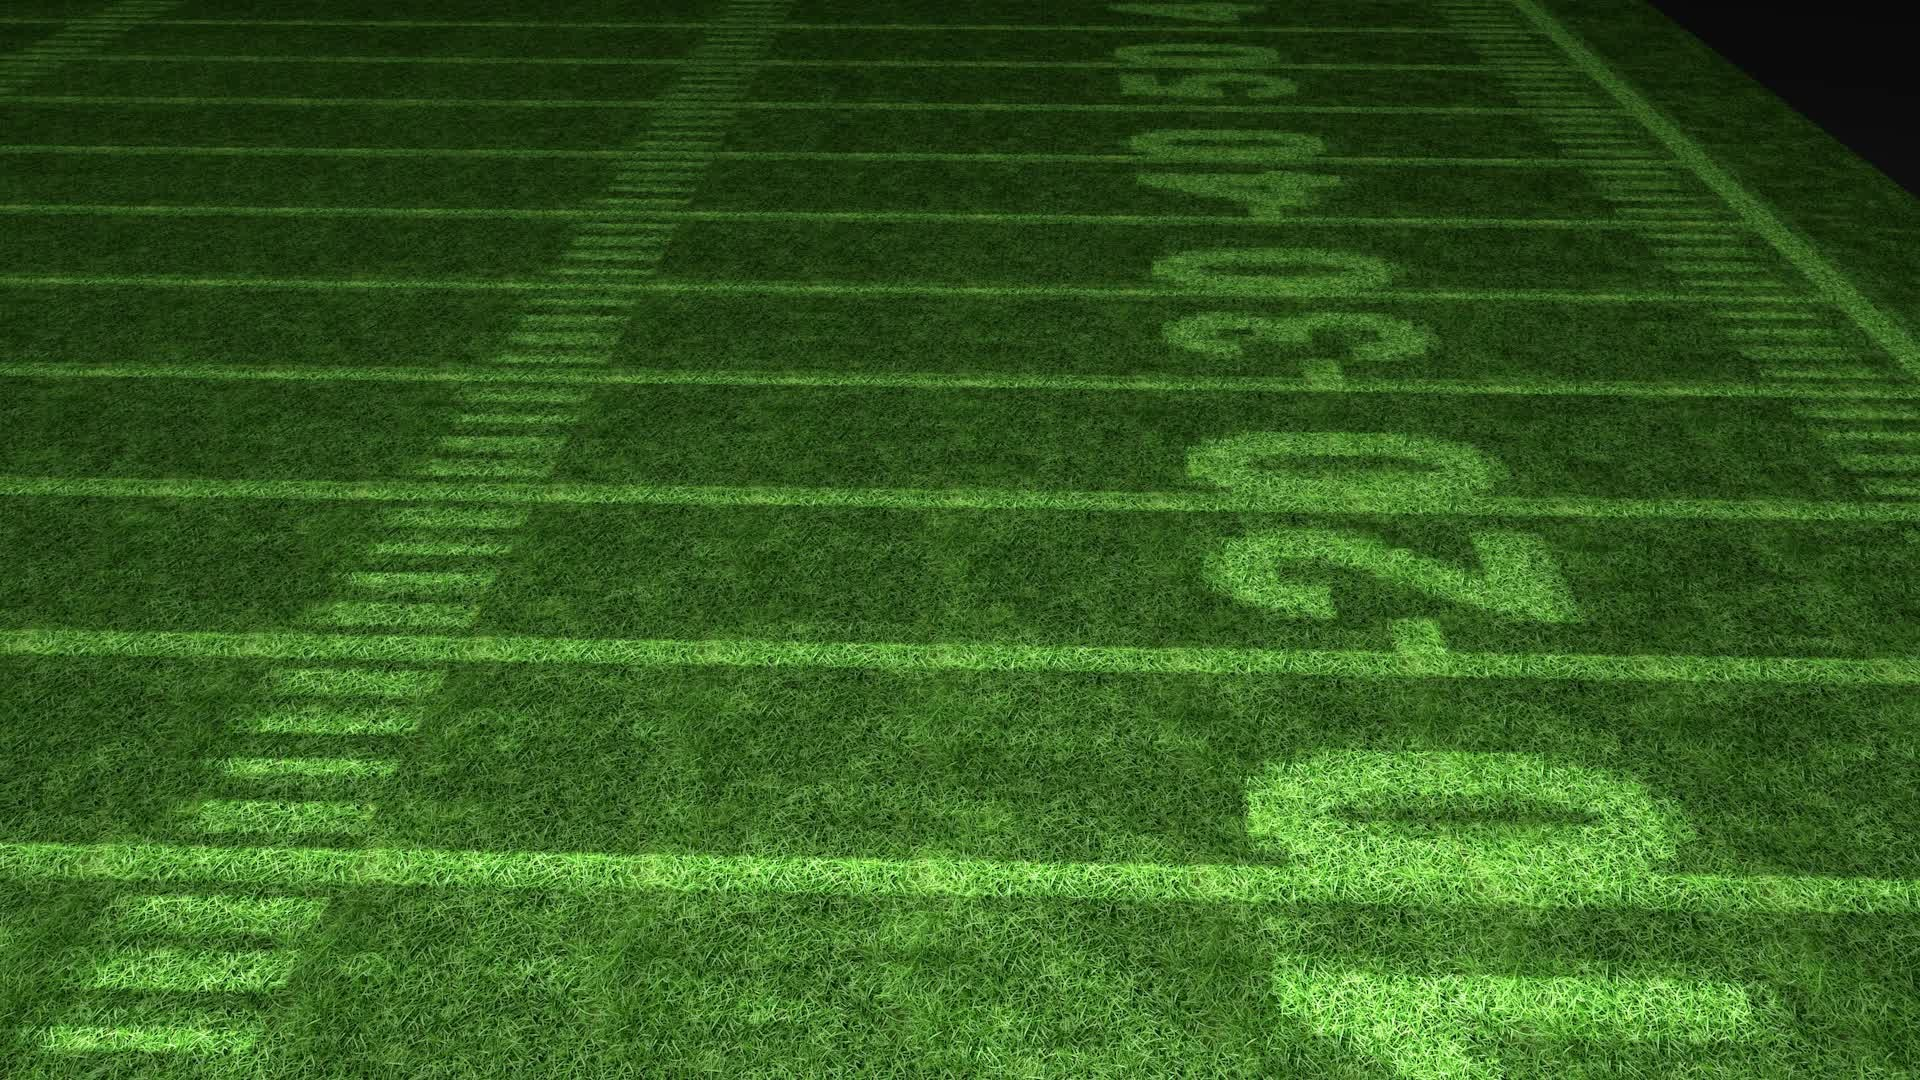 1920x1080 Football Field Backgrounds PixelsTalk Net #7613